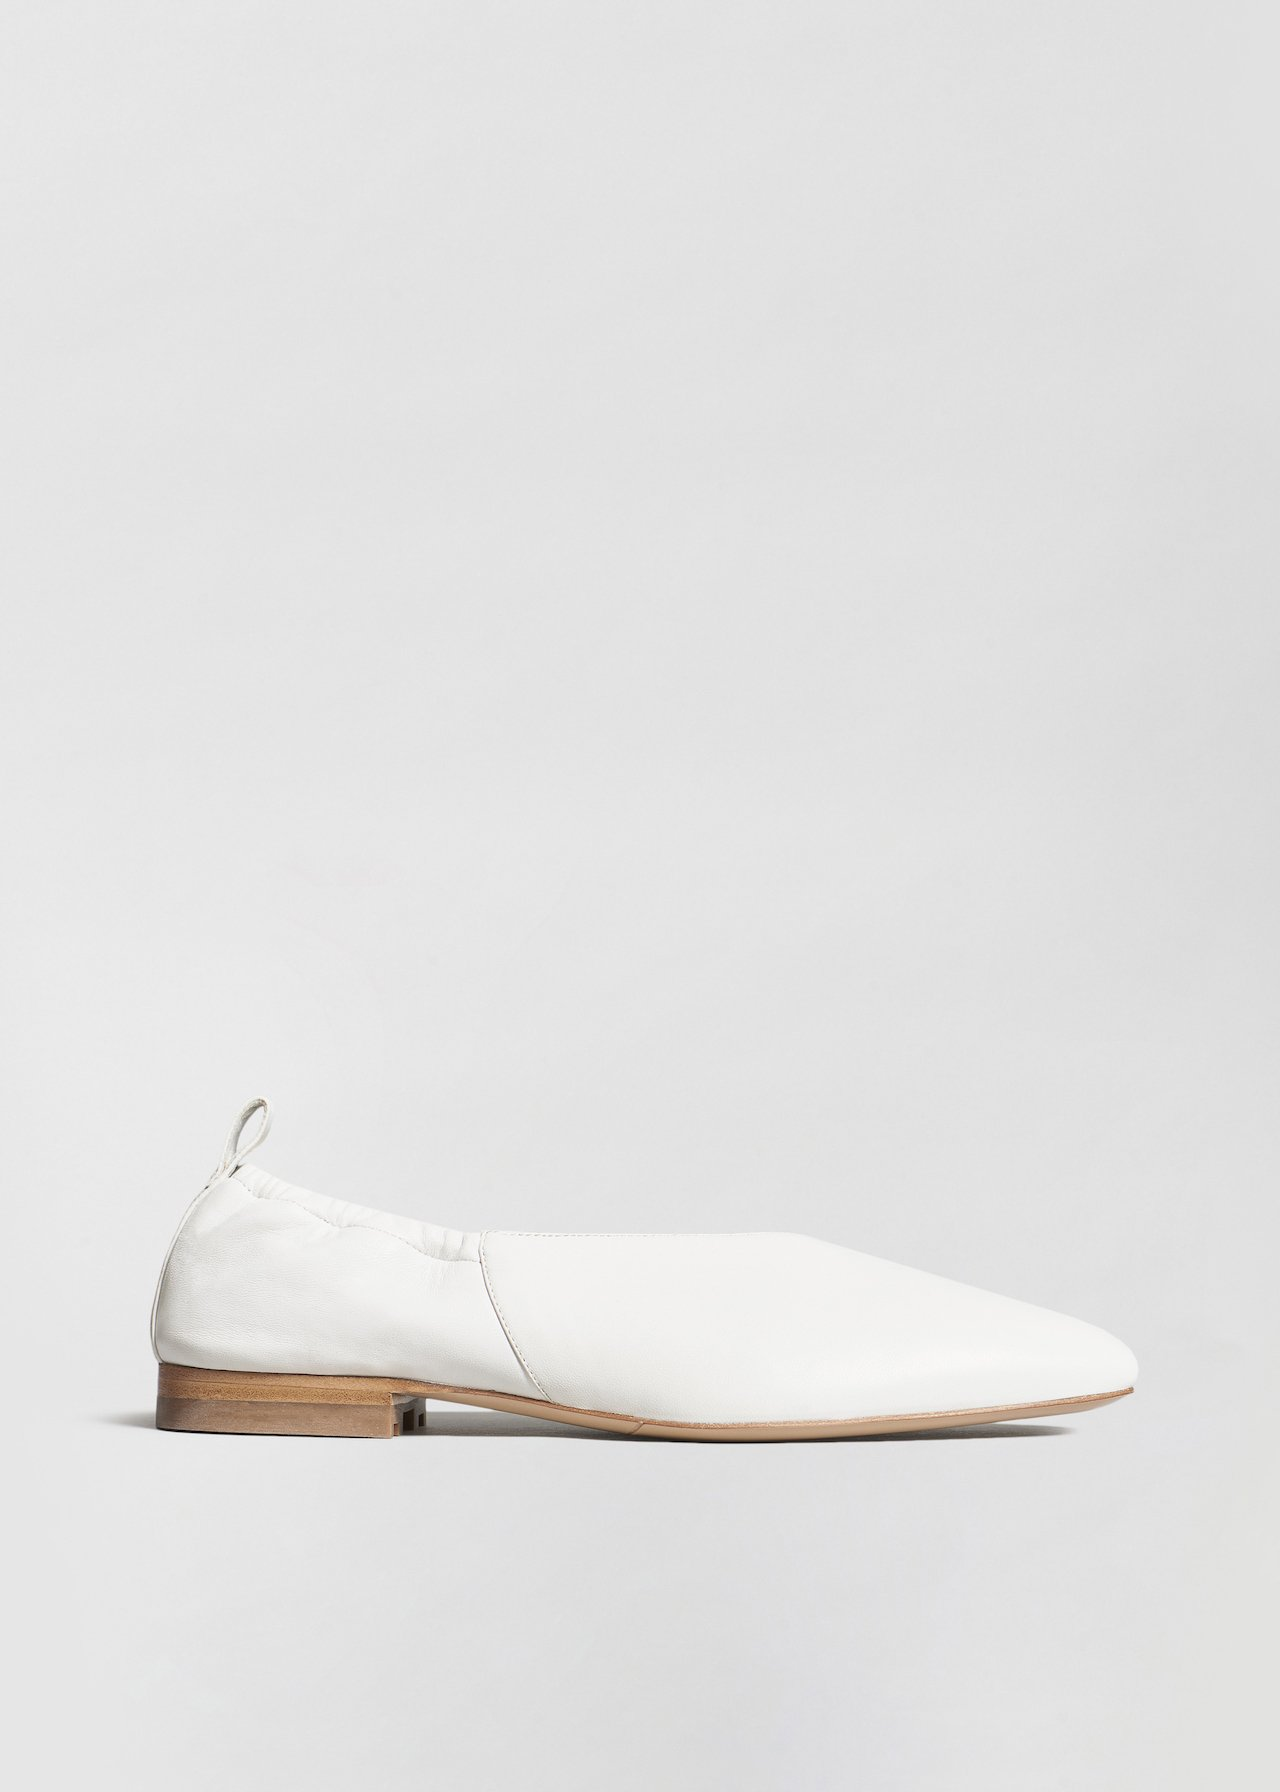 Ballet Flat in Smooth Leather - Black in Ivory by Co Collections